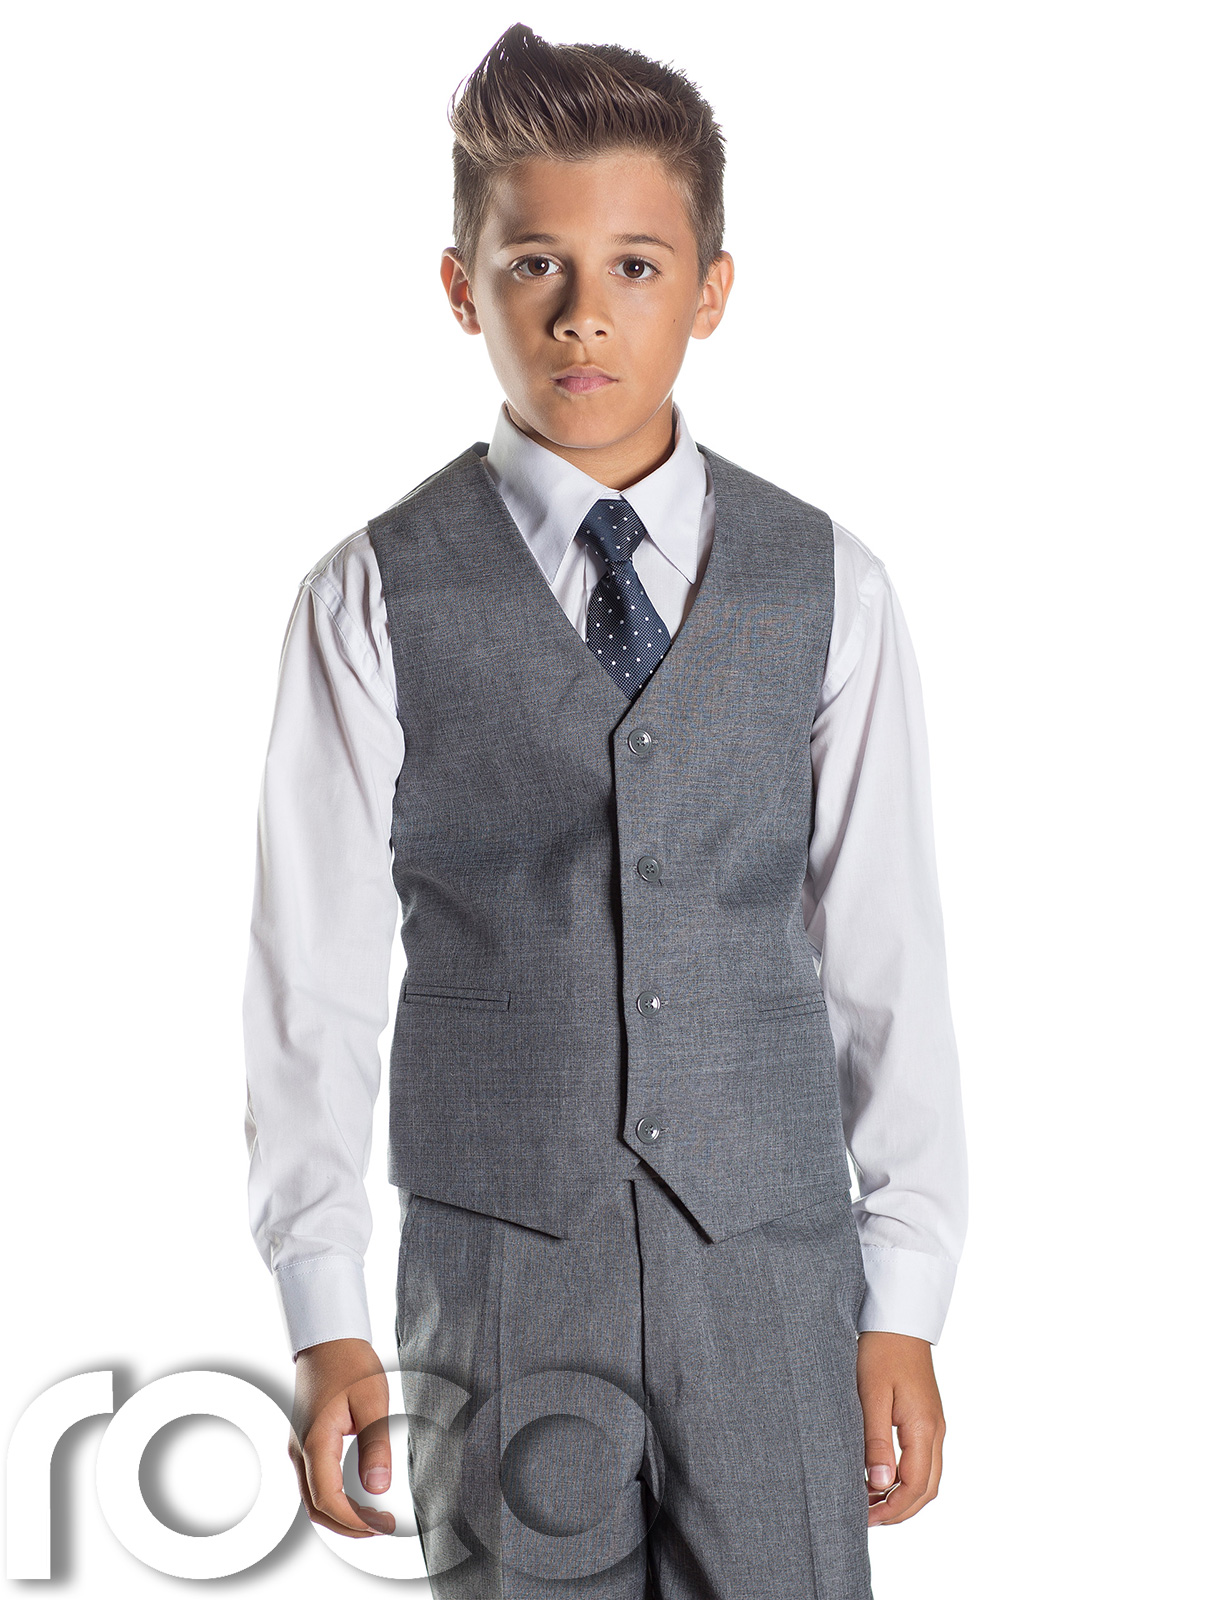 Boys' Suits: Free Shipping on orders over $45 at multiformo.tk - Your Online Boys' Clothing Store! Overstock uses cookies to ensure you get the best experience on our site. If you continue on our site, you consent to the use of such cookies. Boys Suit Grey Windowpane 5 Pieces Classic Fit Suits.